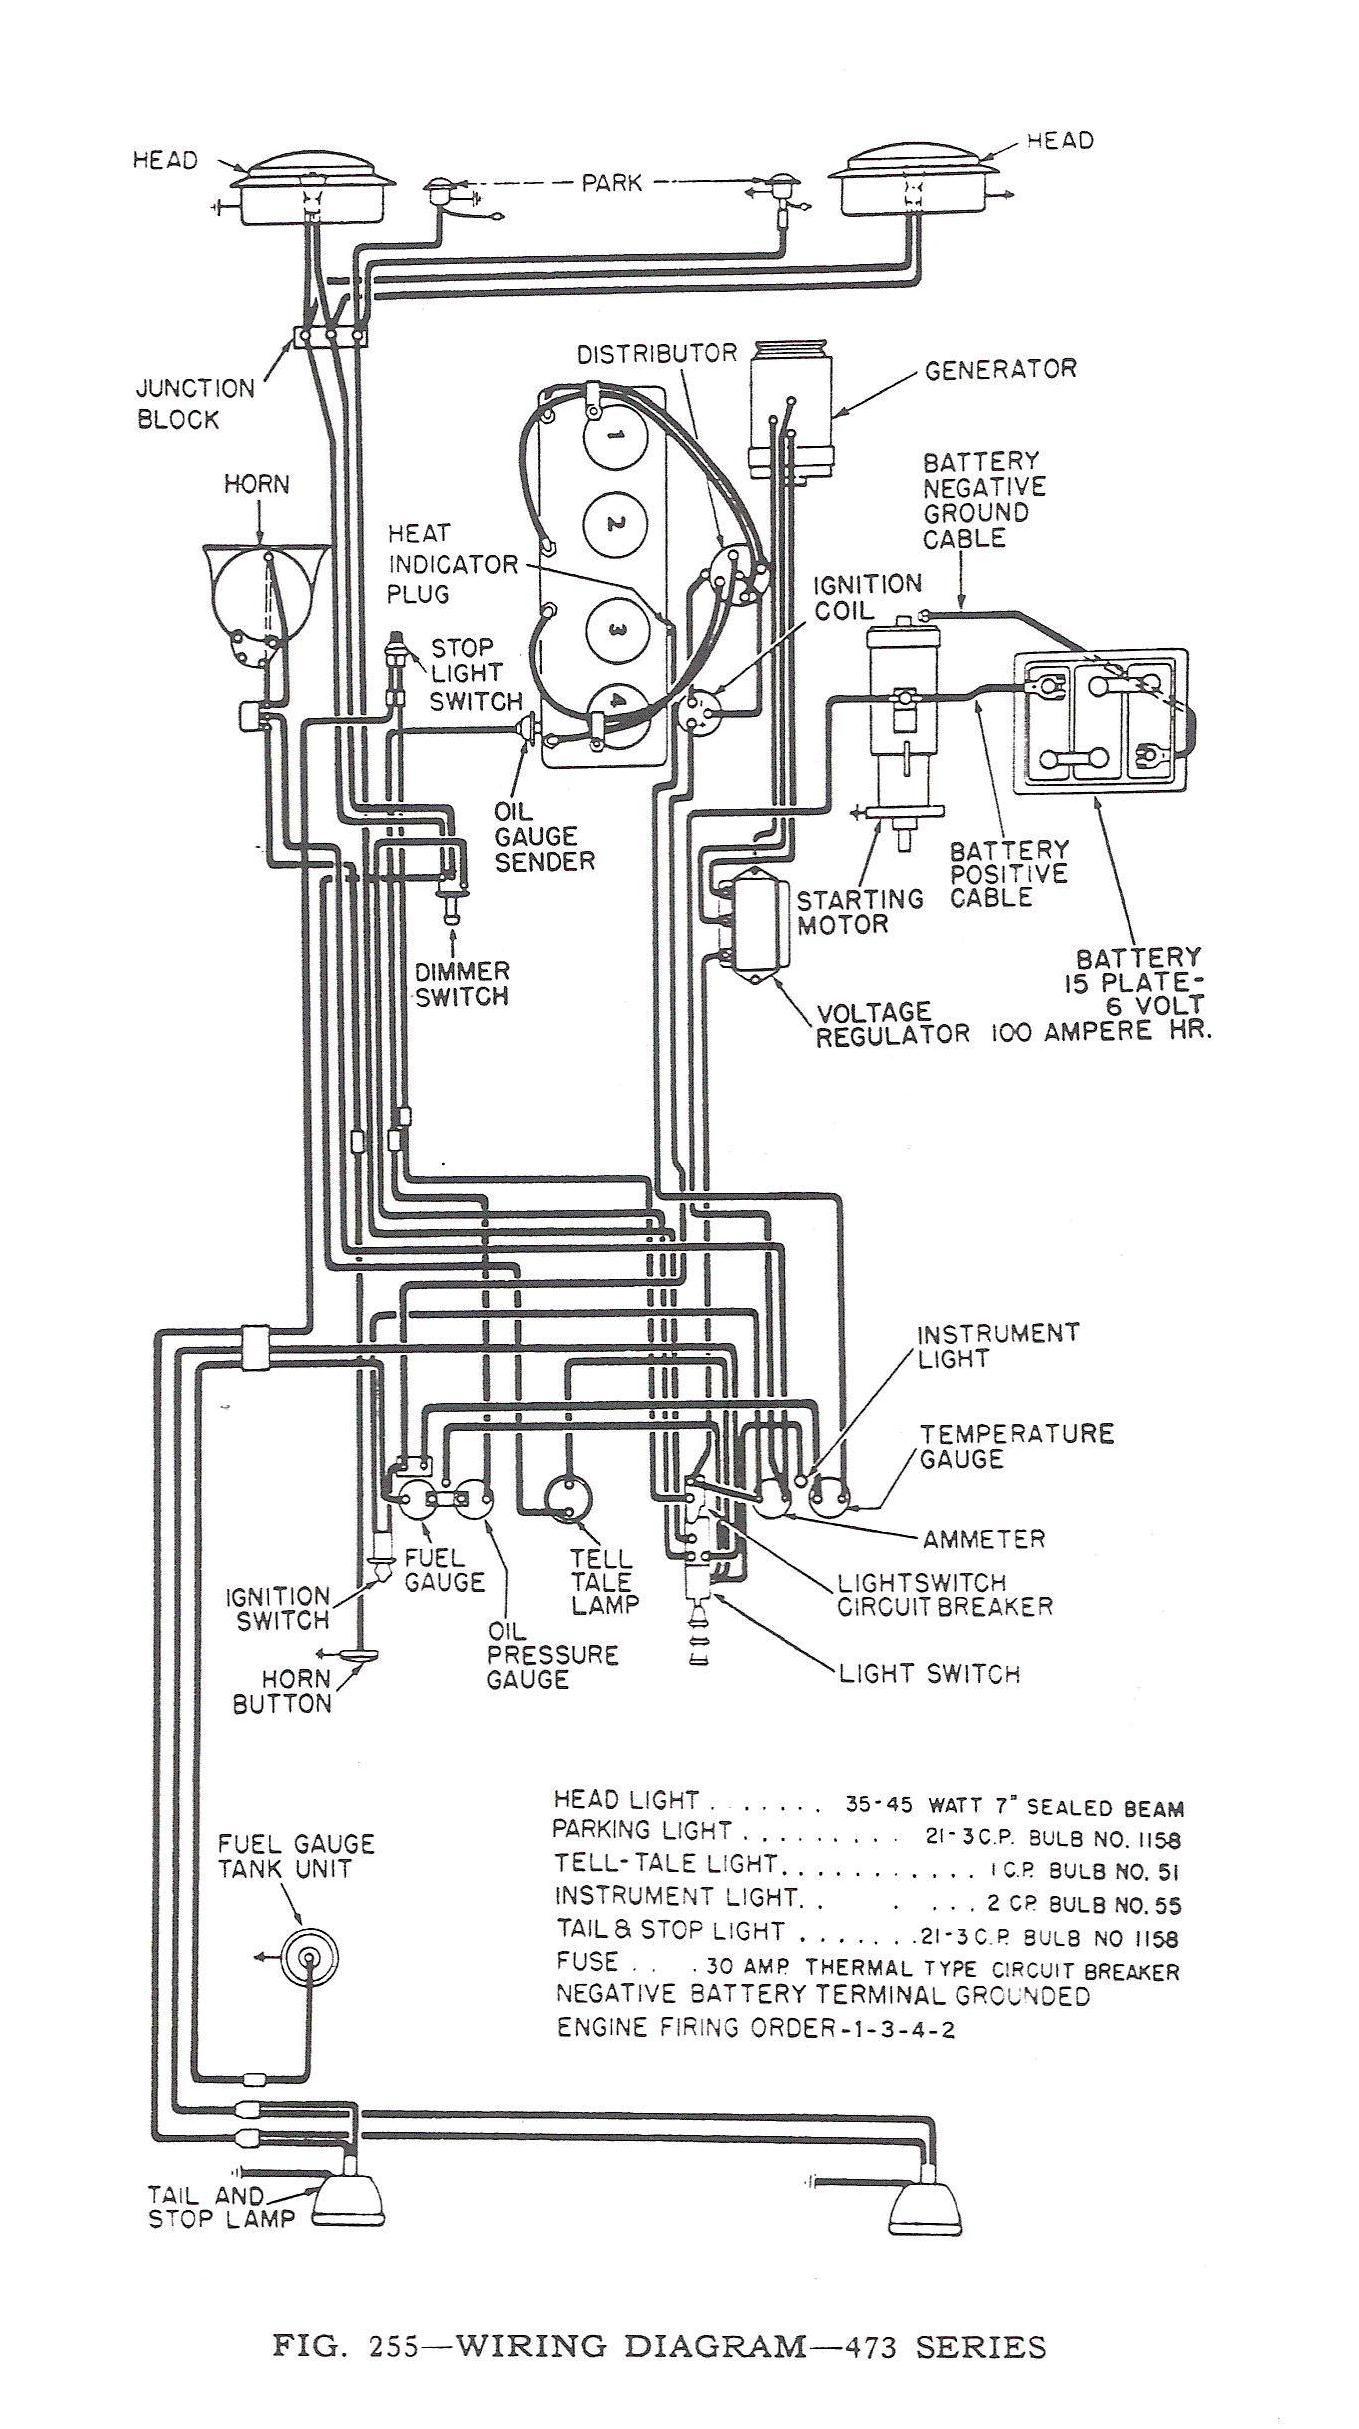 1952 jeep series 473 wiring diagrams  Google Search | sathya | Jeep, Jeep cj, Jeep cj7